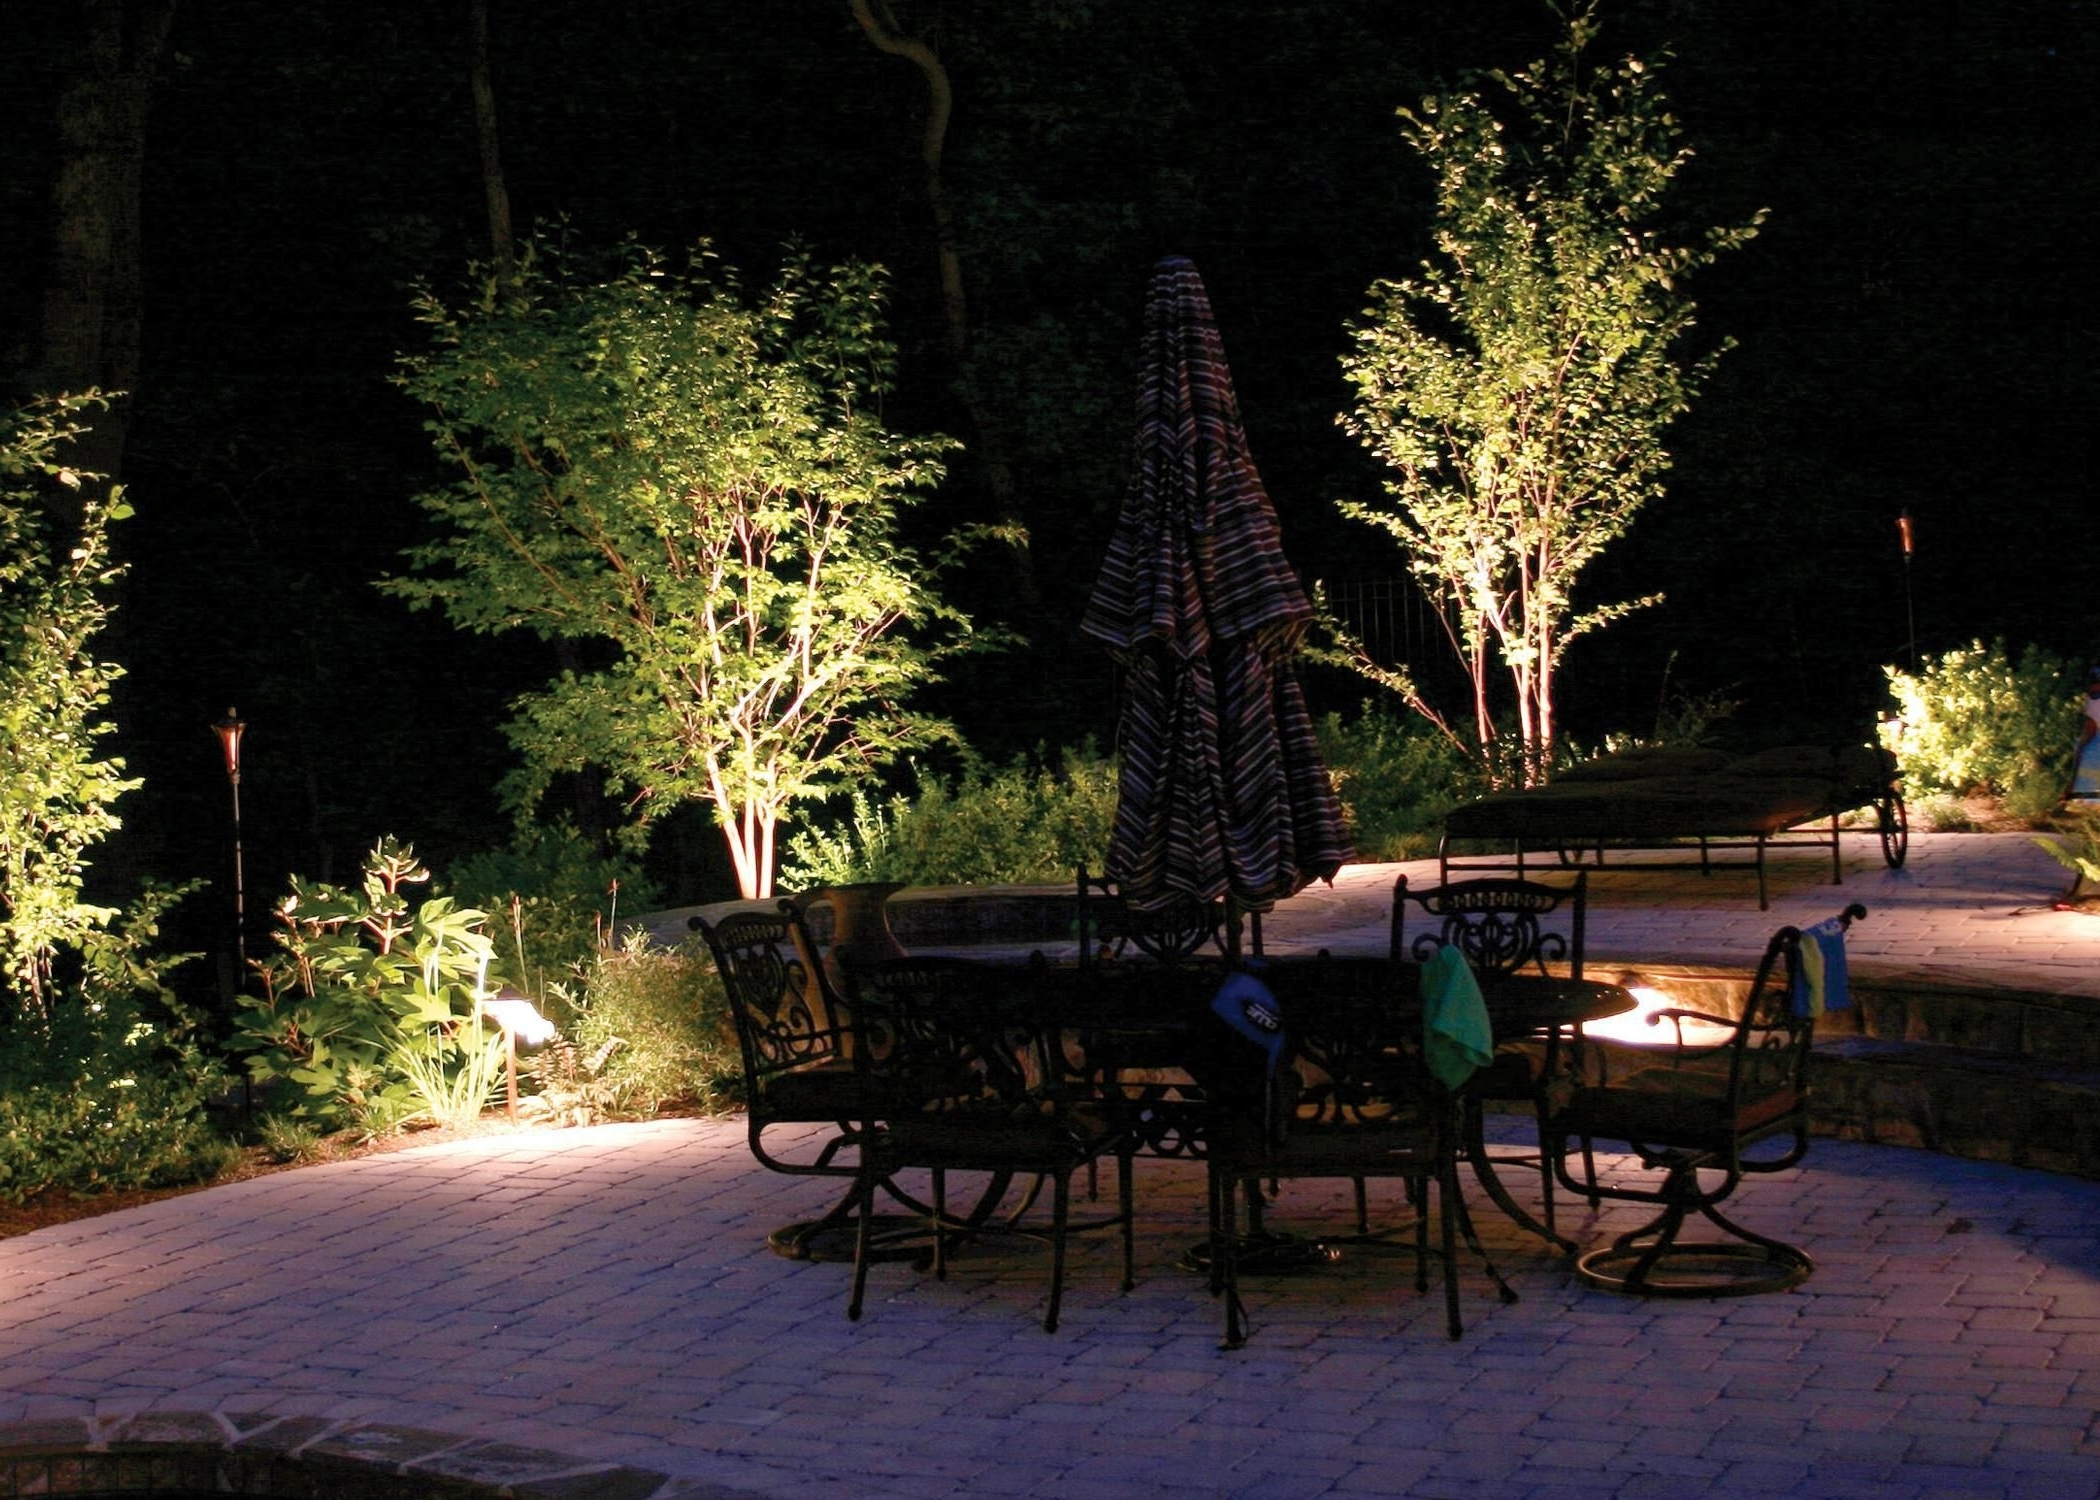 Diy Outdoor Lanterns Lighting For Ranch Style House Landscape Ideas For 2019 Diy Outdoor Lanterns (View 13 of 20)